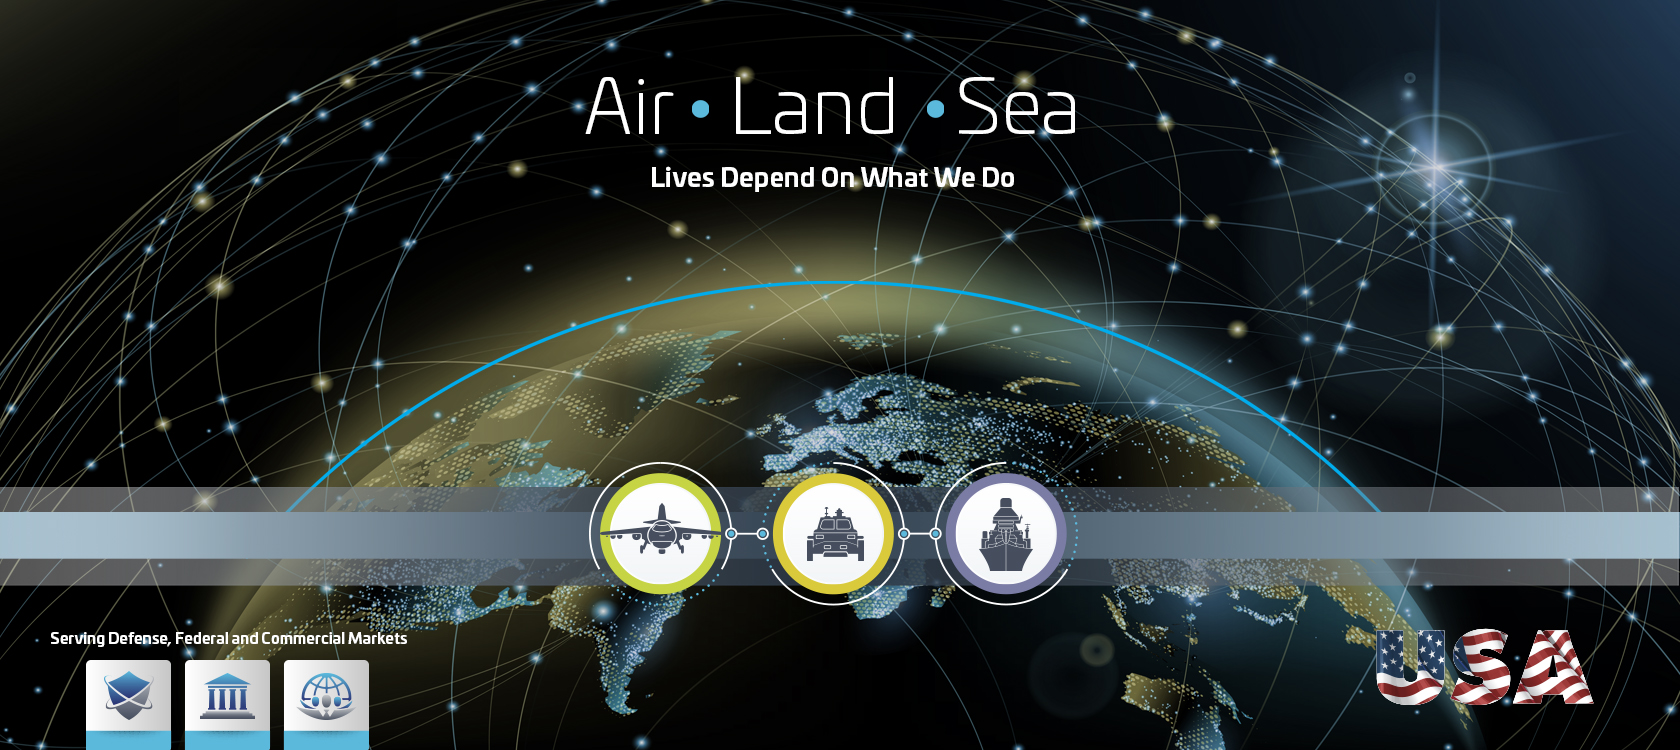 Thales: Air - Land - Sea, Lives Depend On What We Do